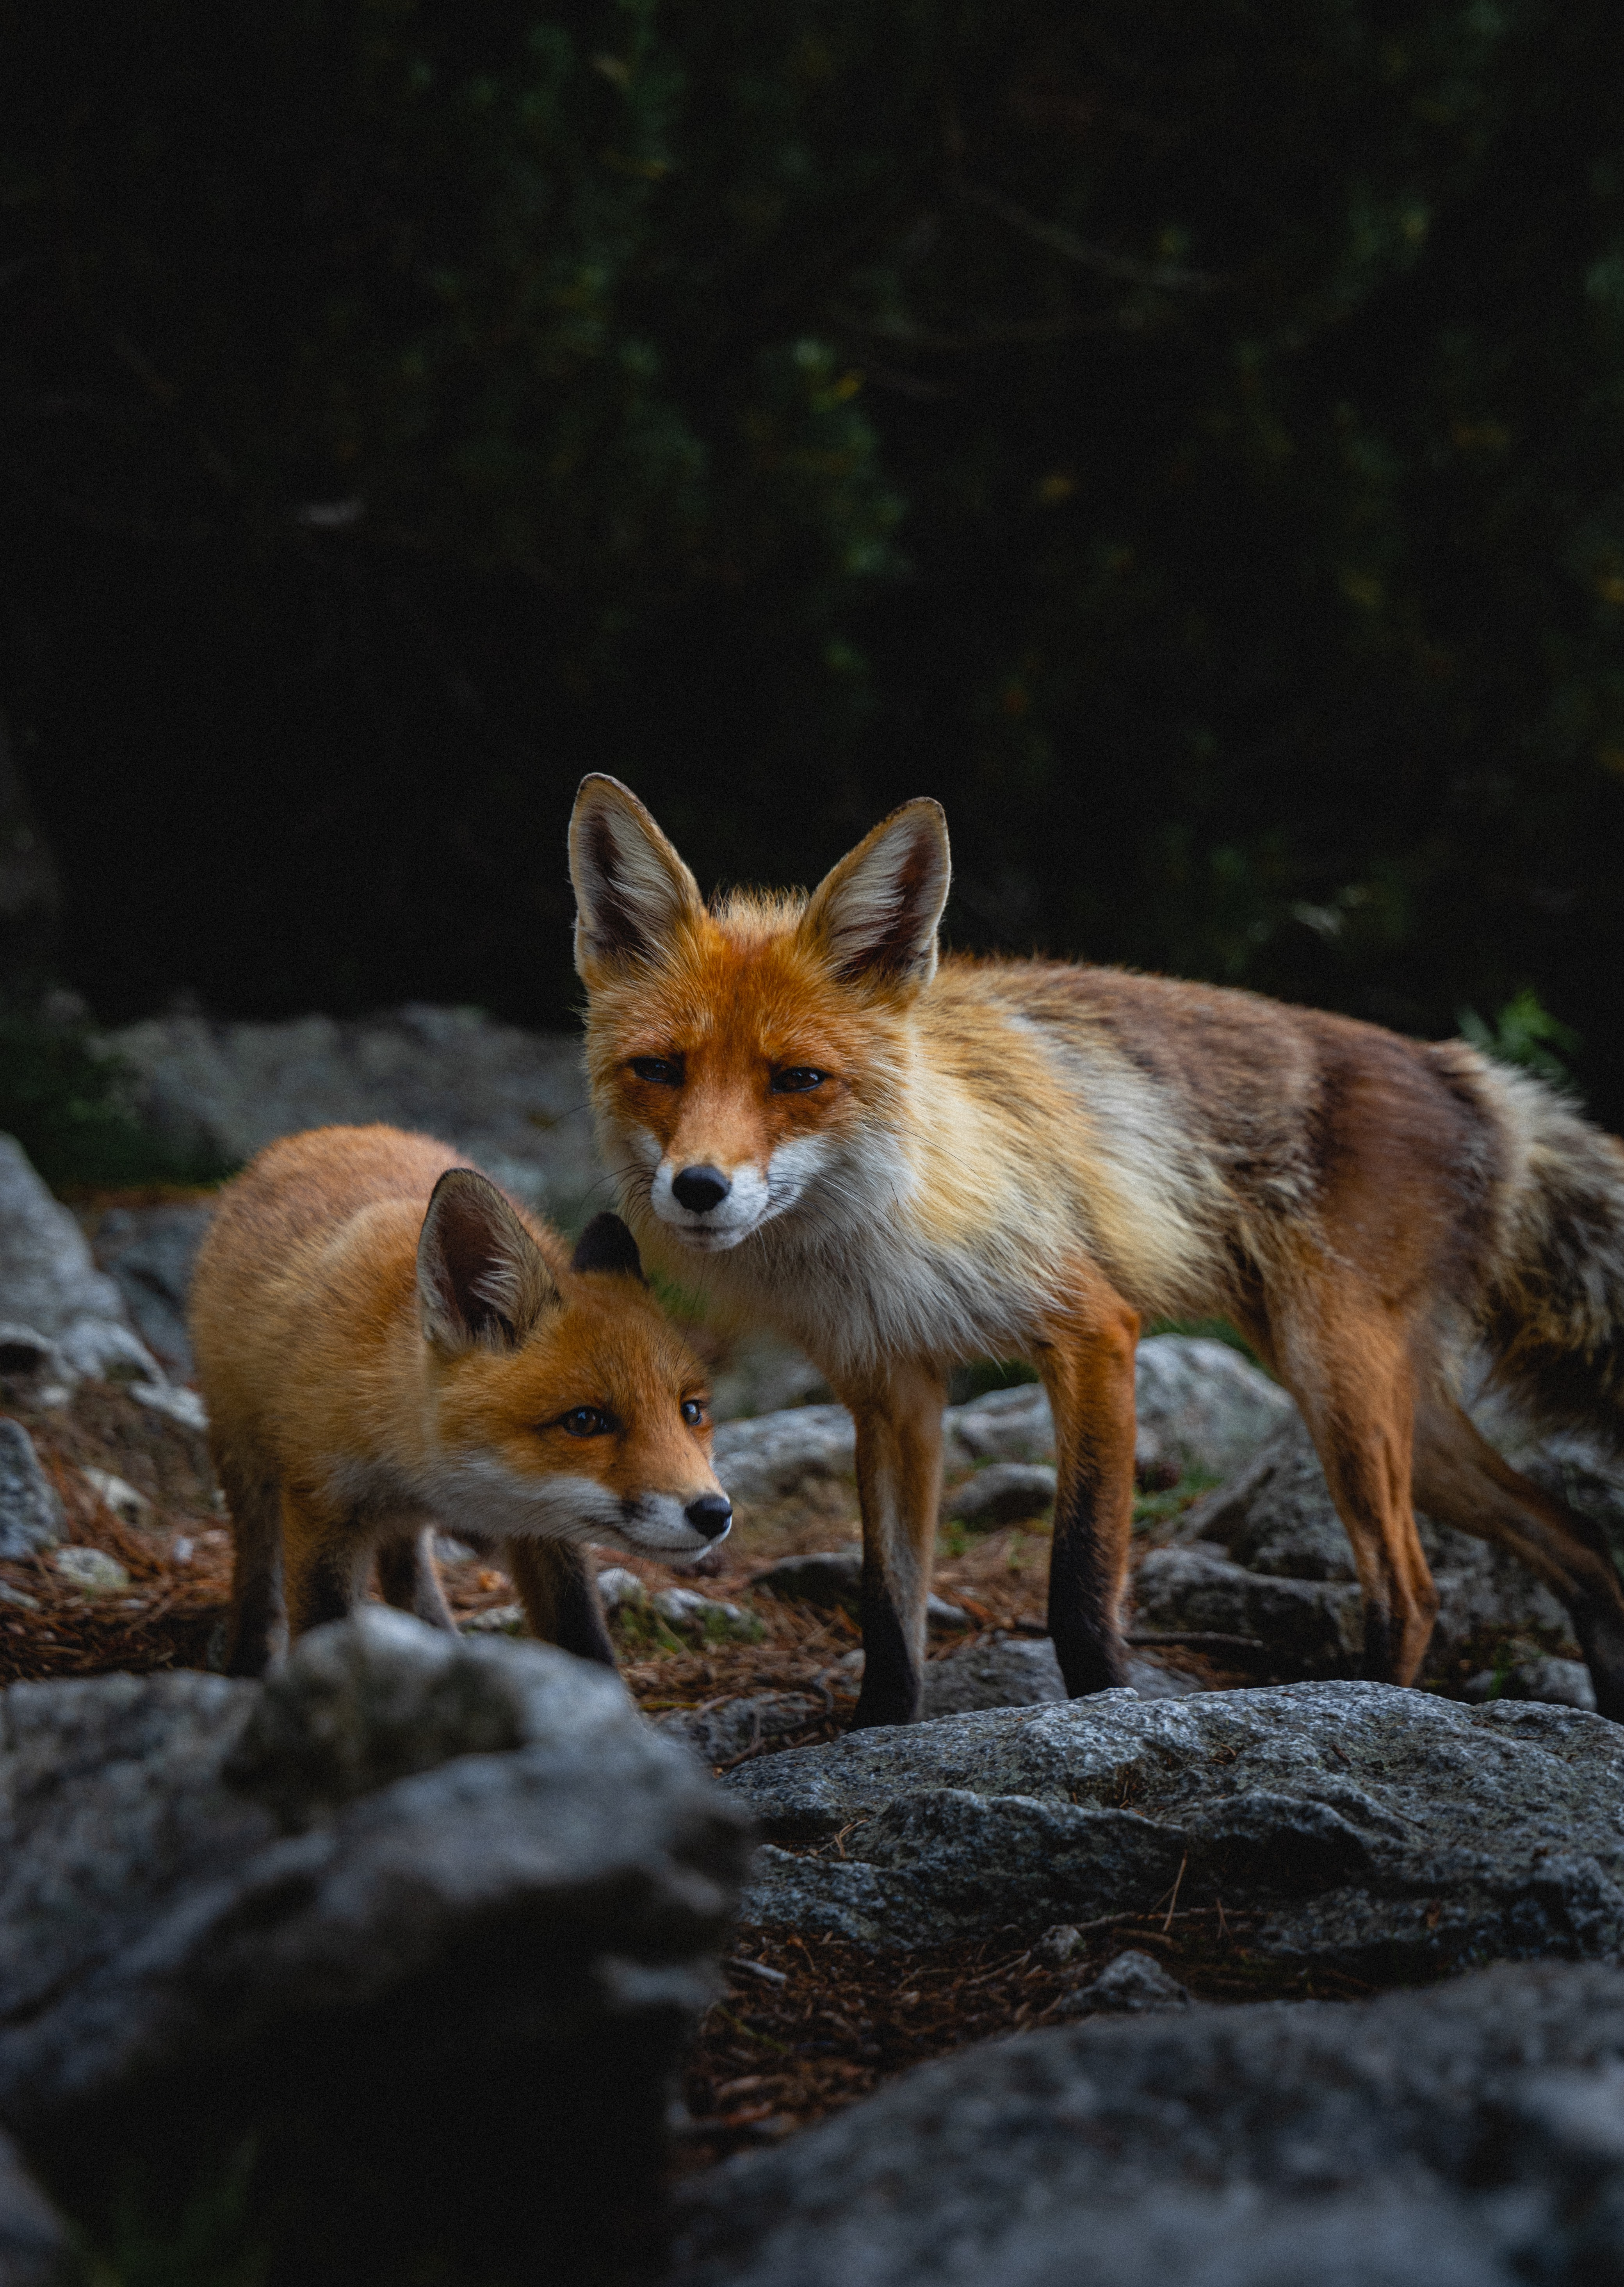 154164 download wallpaper Animals, Fox, Young, Joey, Predator, Animal, Stones screensavers and pictures for free